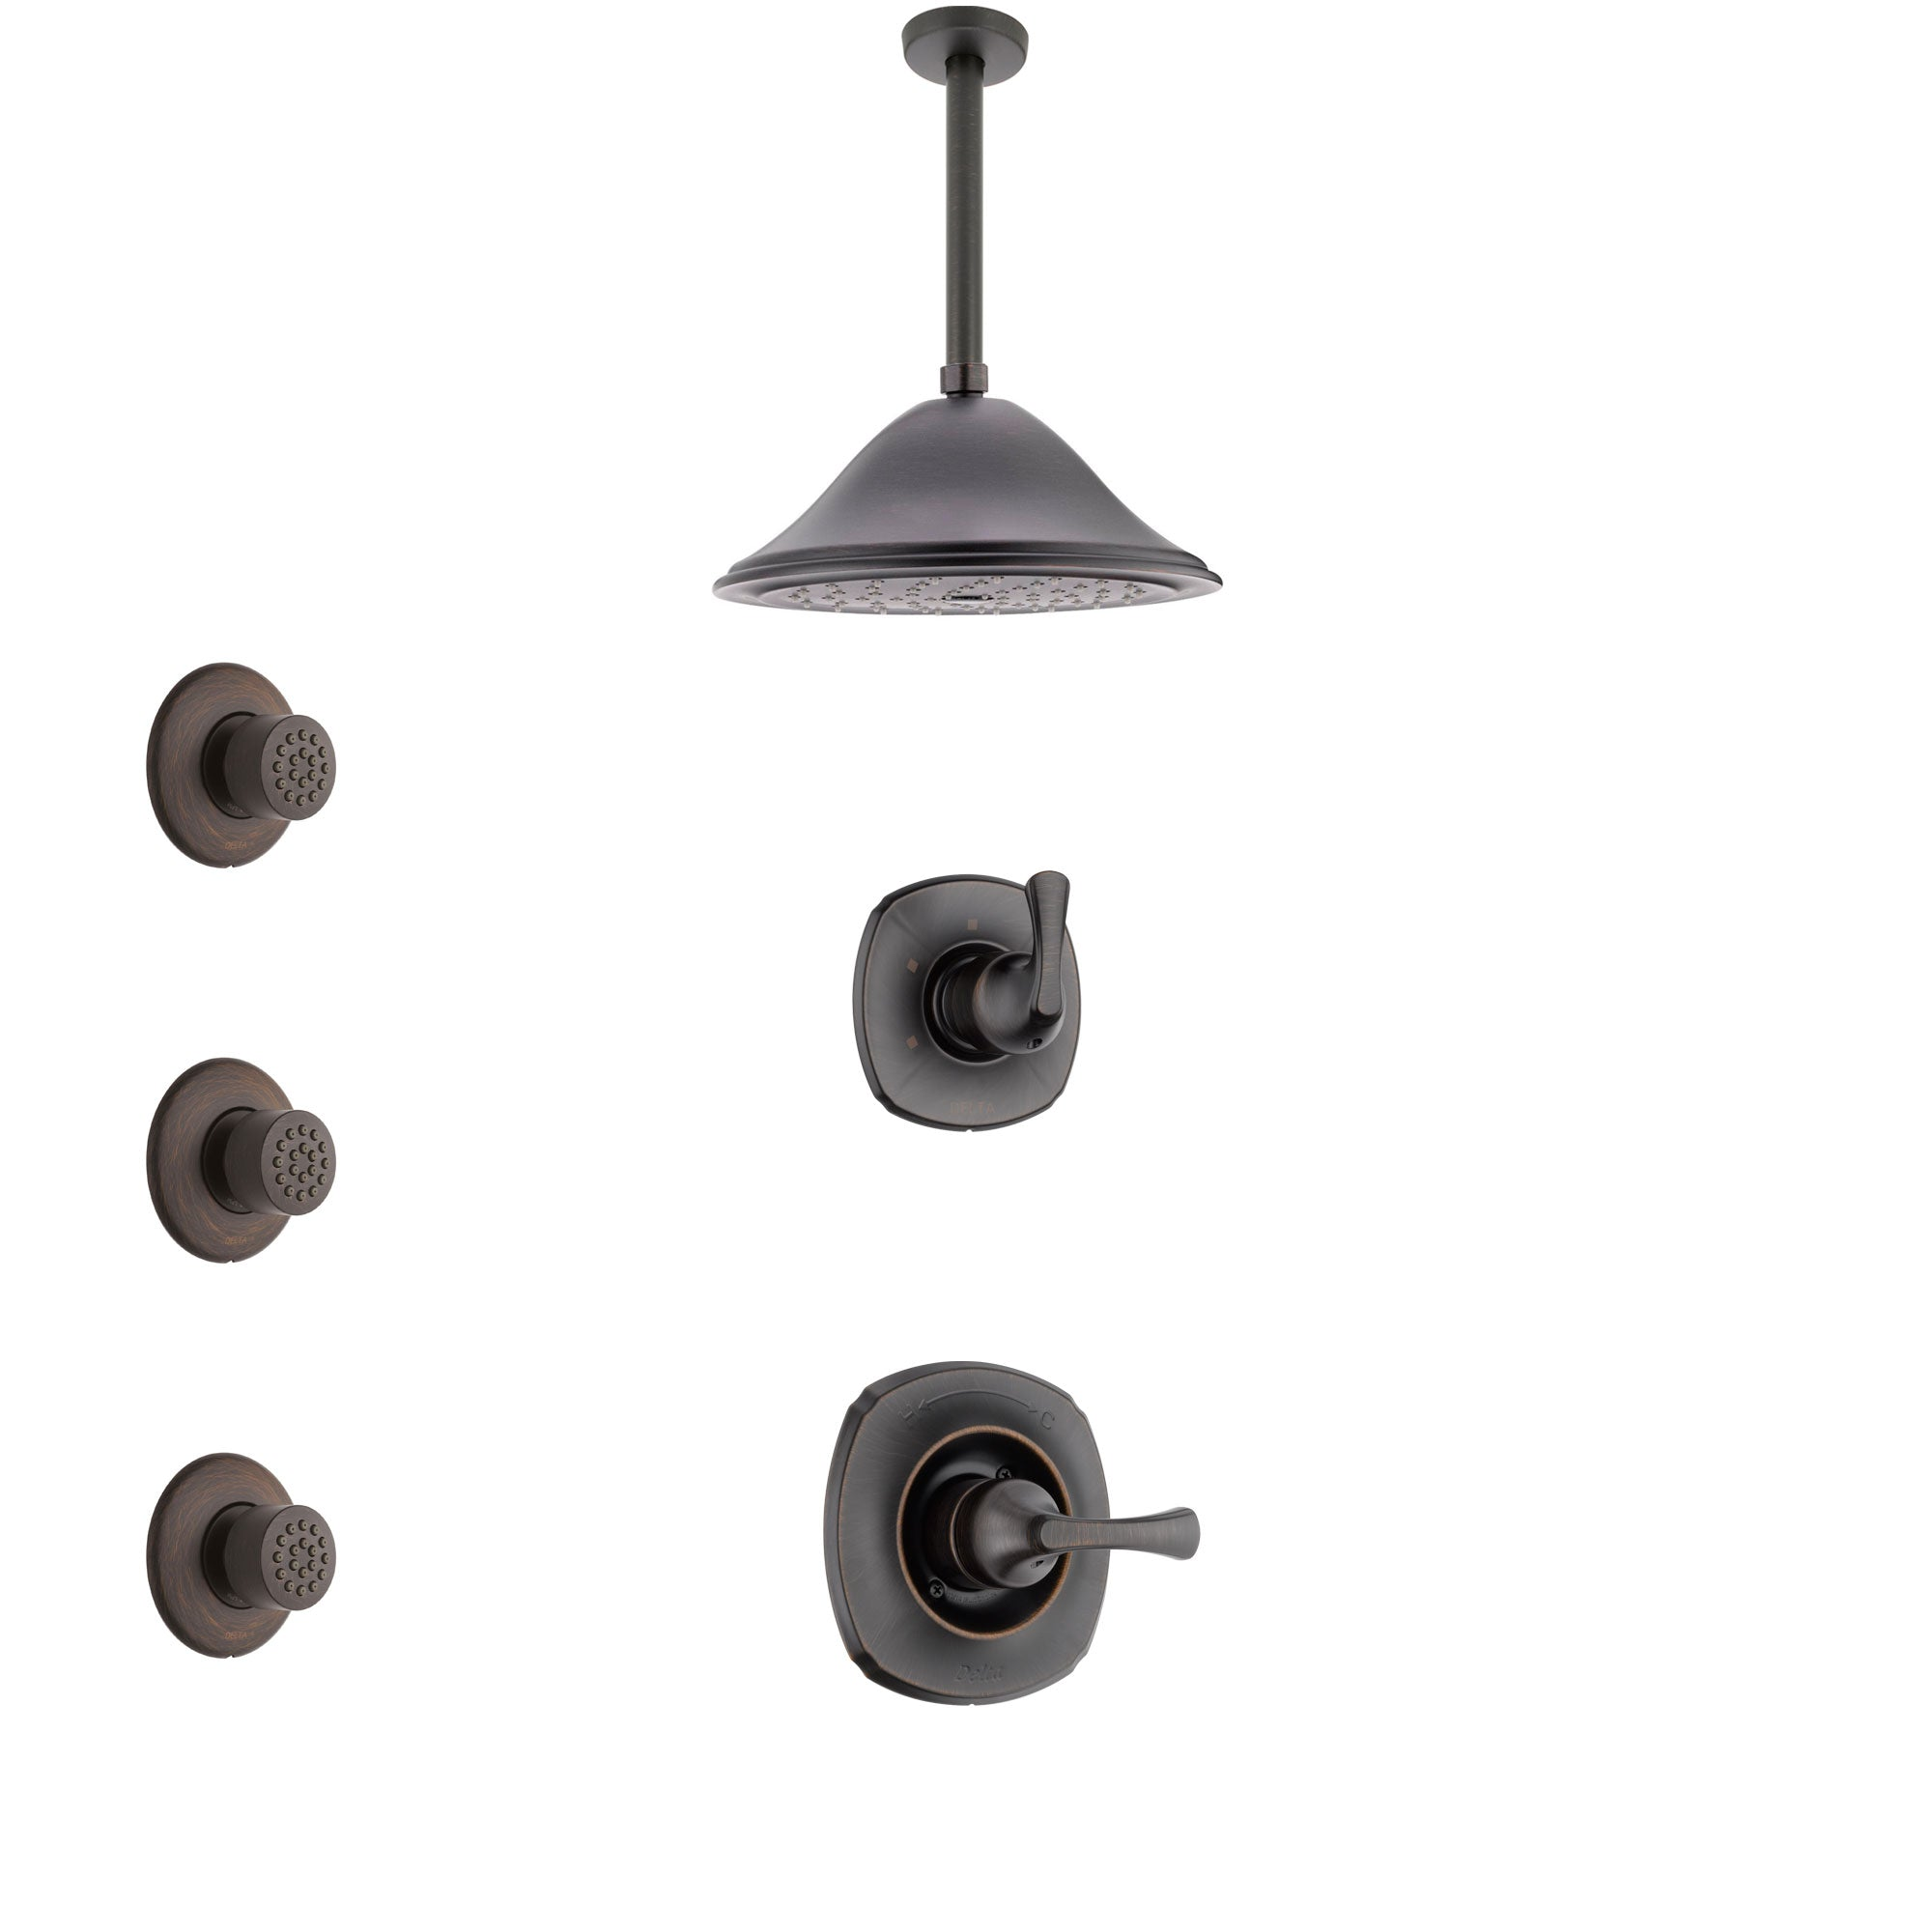 Delta Addison Venetian Bronze Finish Shower System with Control Handle, 3-Setting Diverter, Ceiling Mount Showerhead, and 3 Body Sprays SS1492RB3